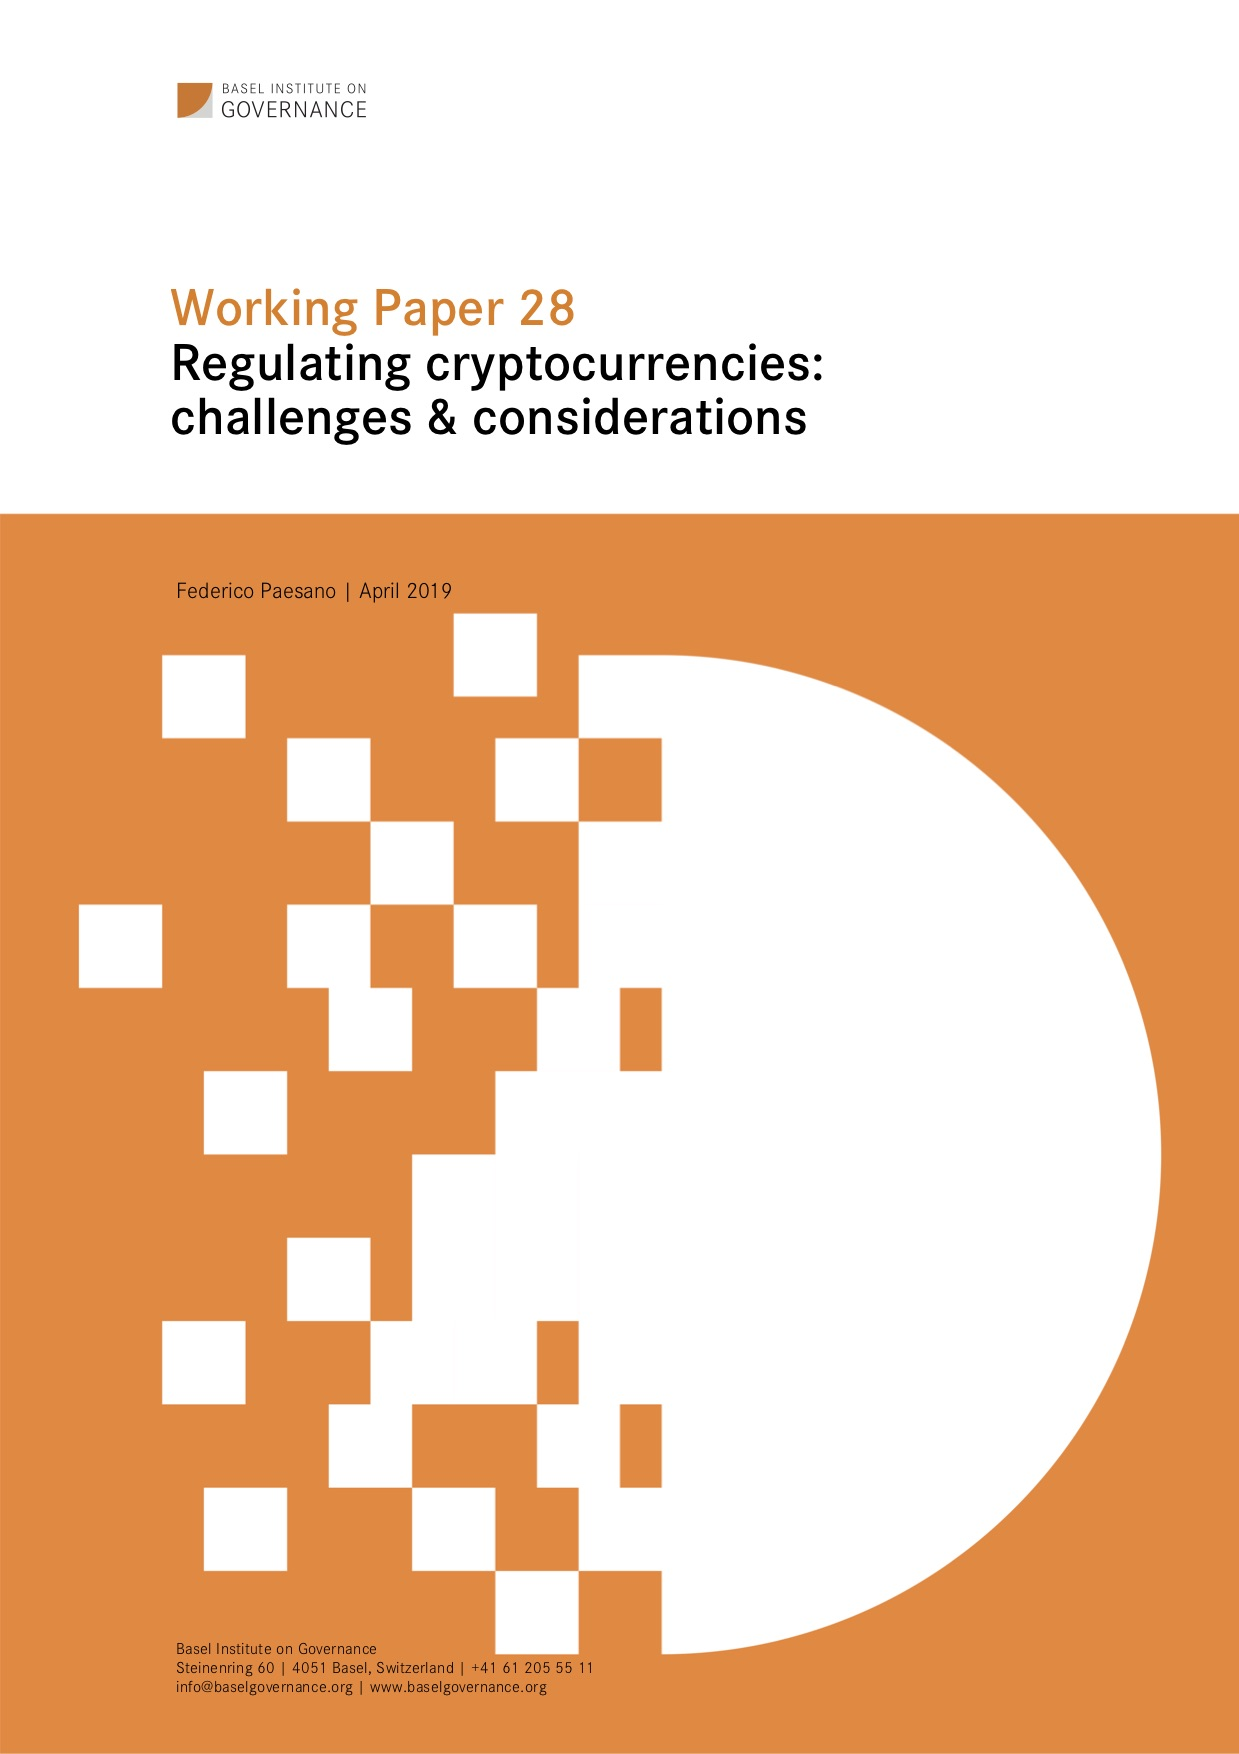 Working Paper 28 Regulating cryptocurrencies: challenges & considerations